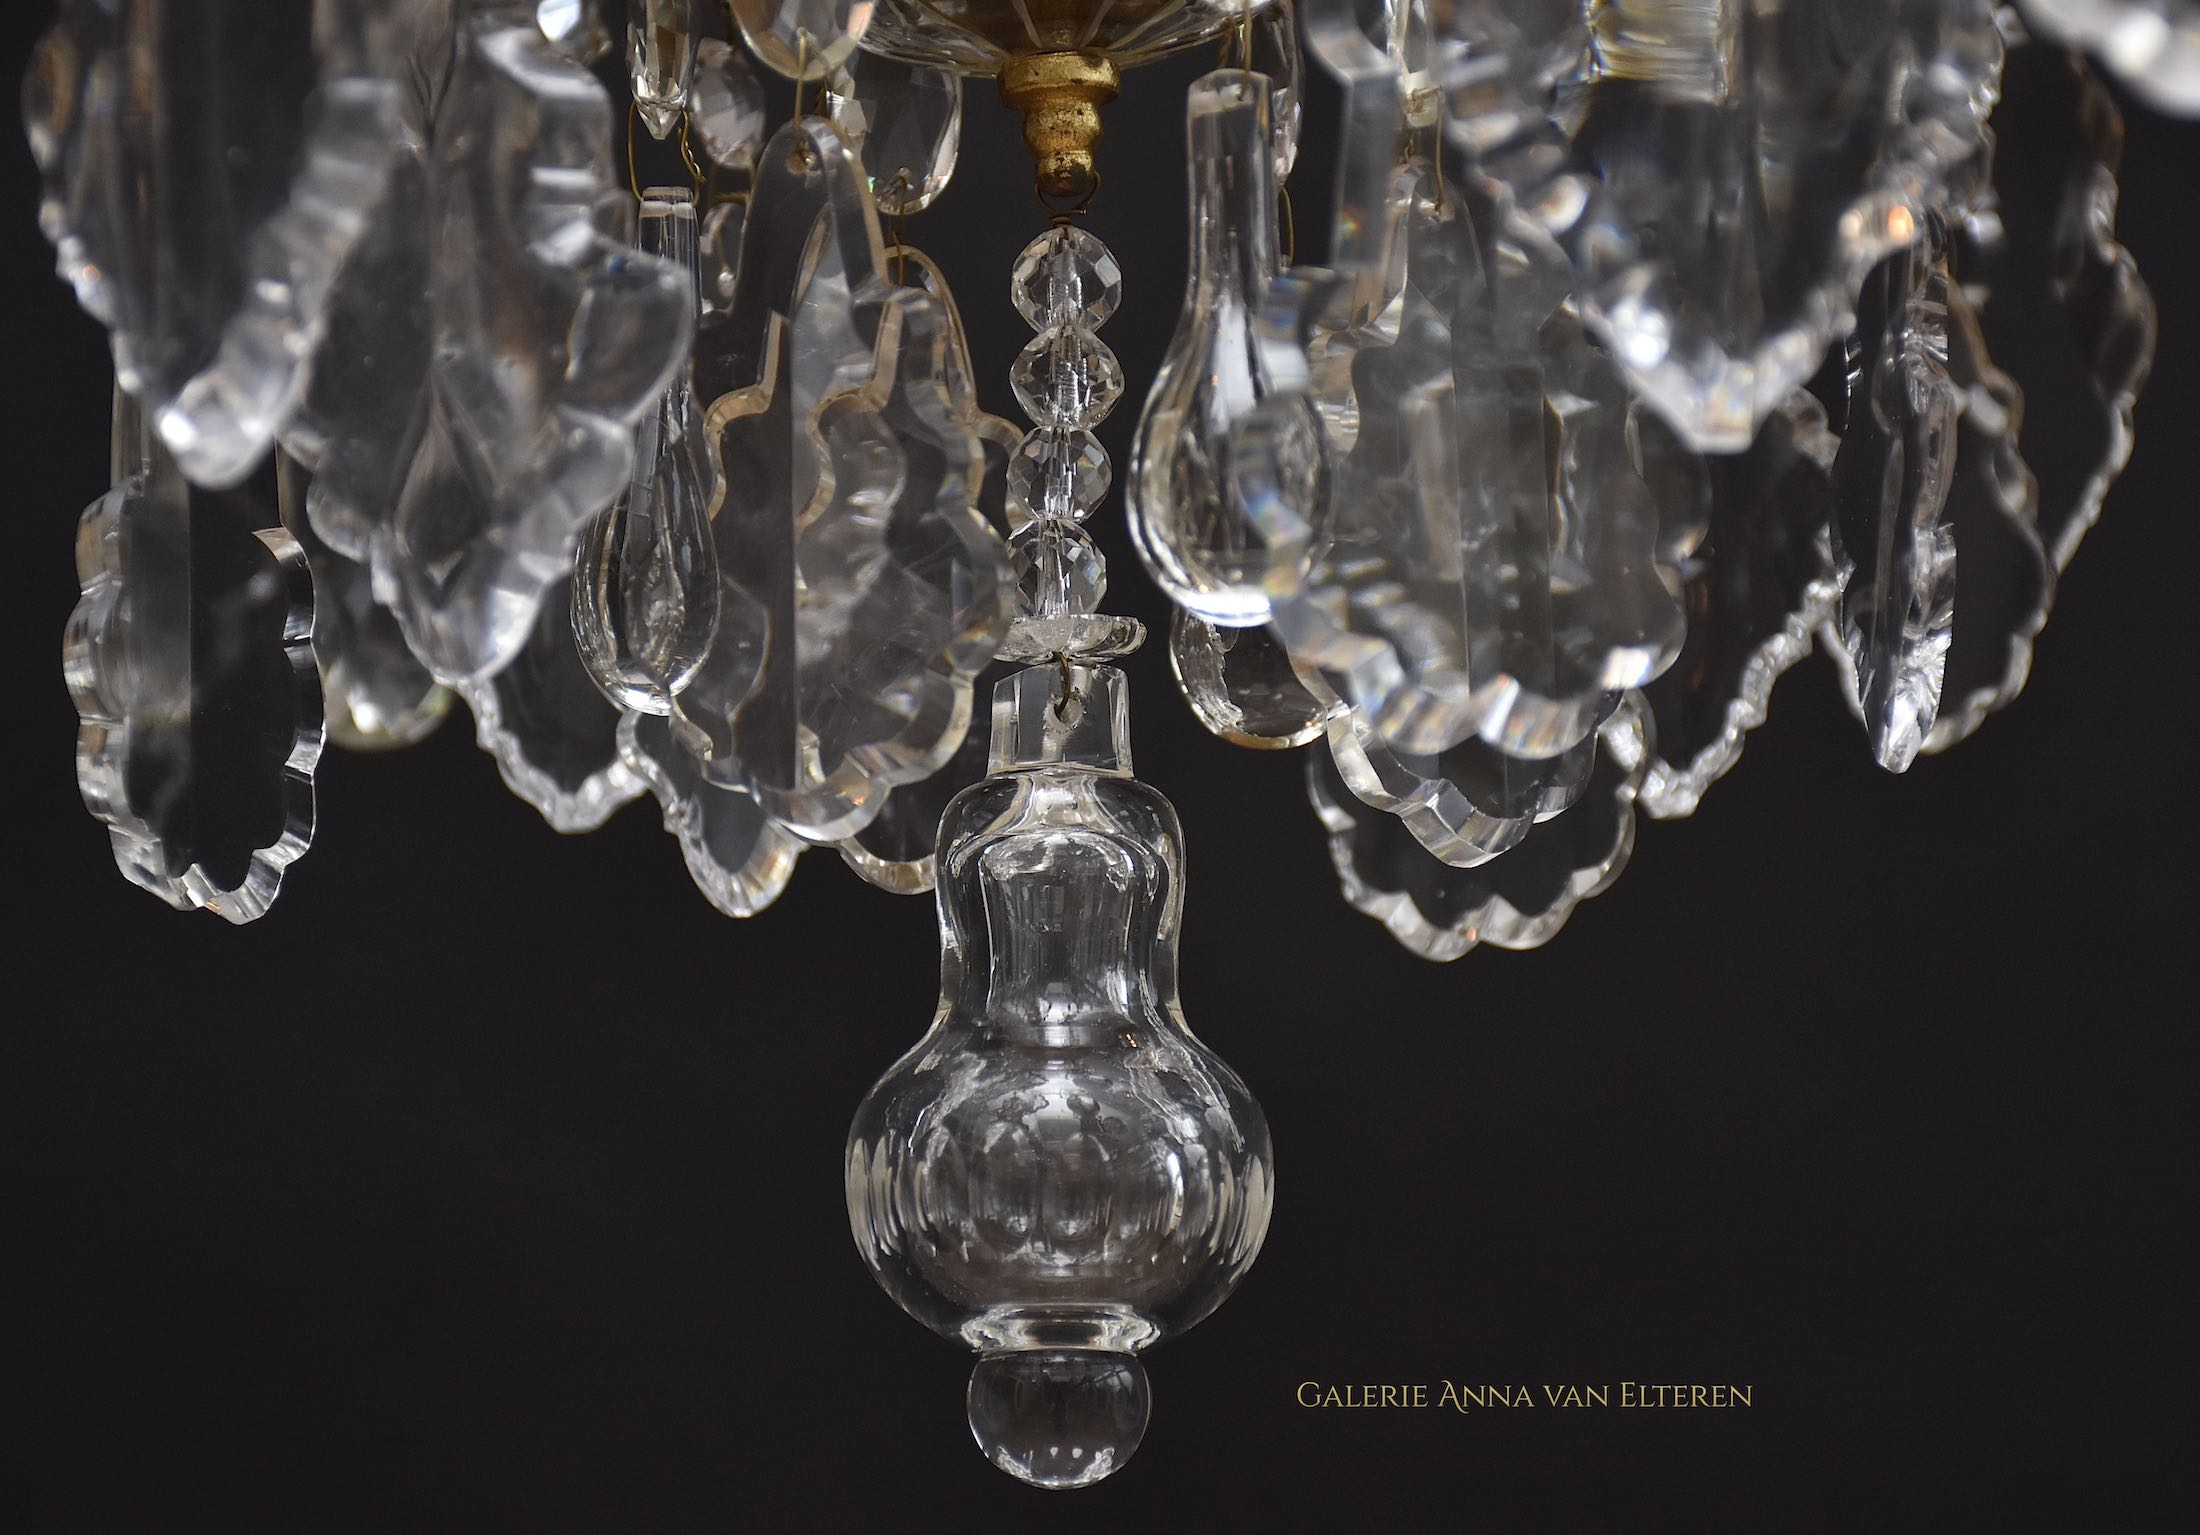 Antique chandelier 'Maria Theresia'